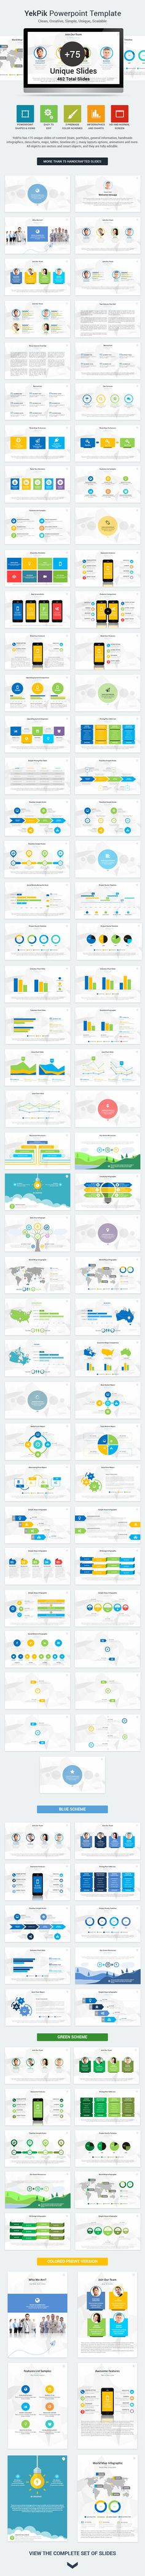 YekPix PowerPoint Presentation Template, clean, creative, simple, unique, scalable and multipurpose PowerPoint Template